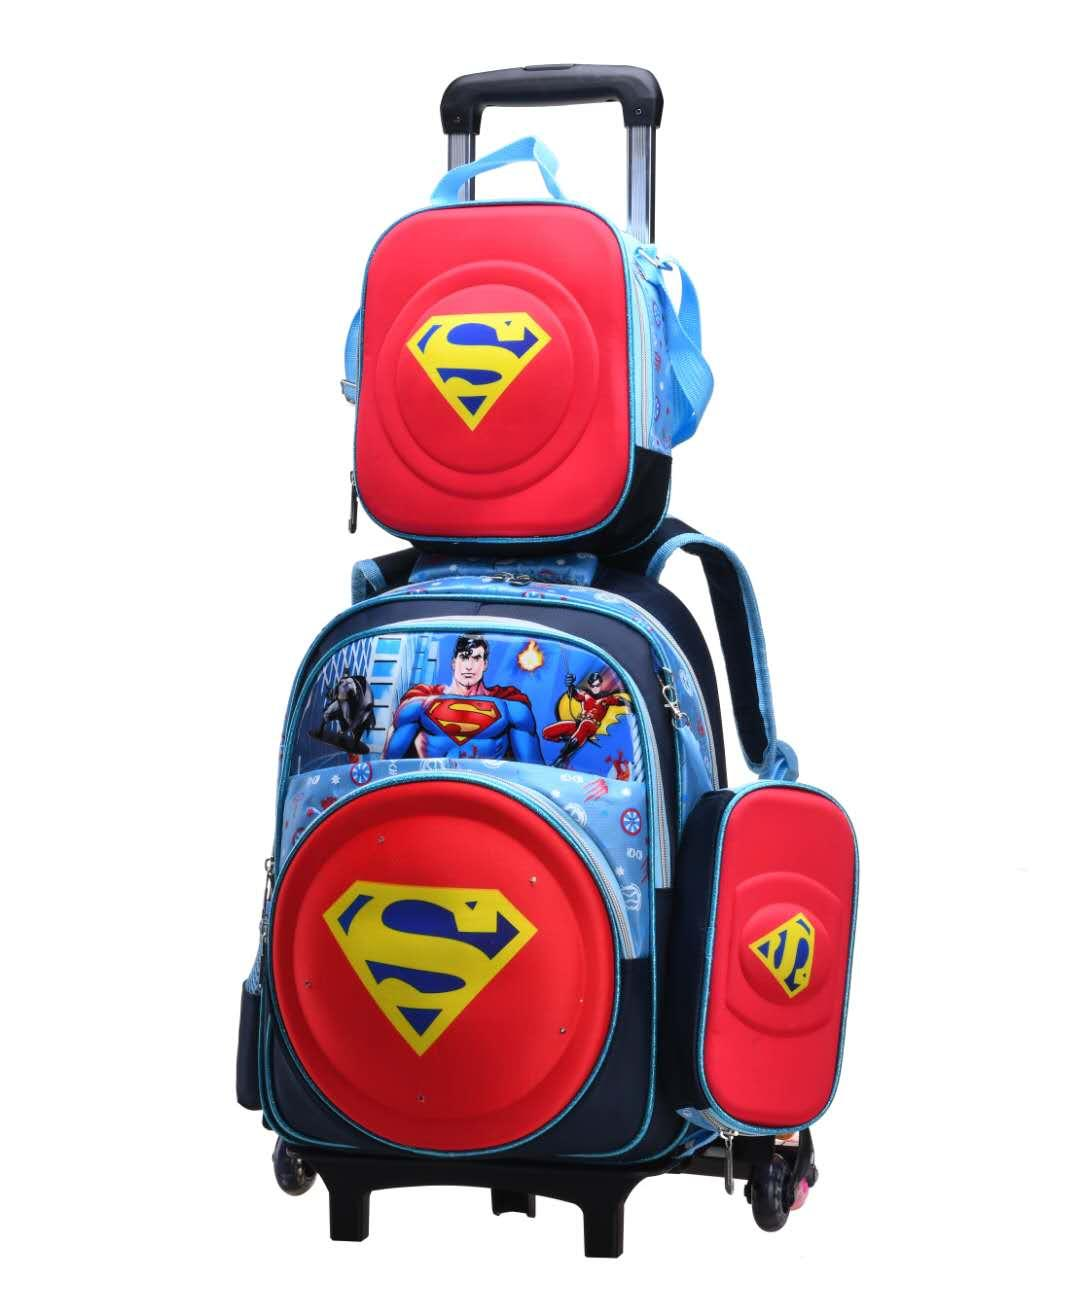 57caa68c0 Kids Trolley Bags for sale - Rolling Backpack for Kids Online Deals ...